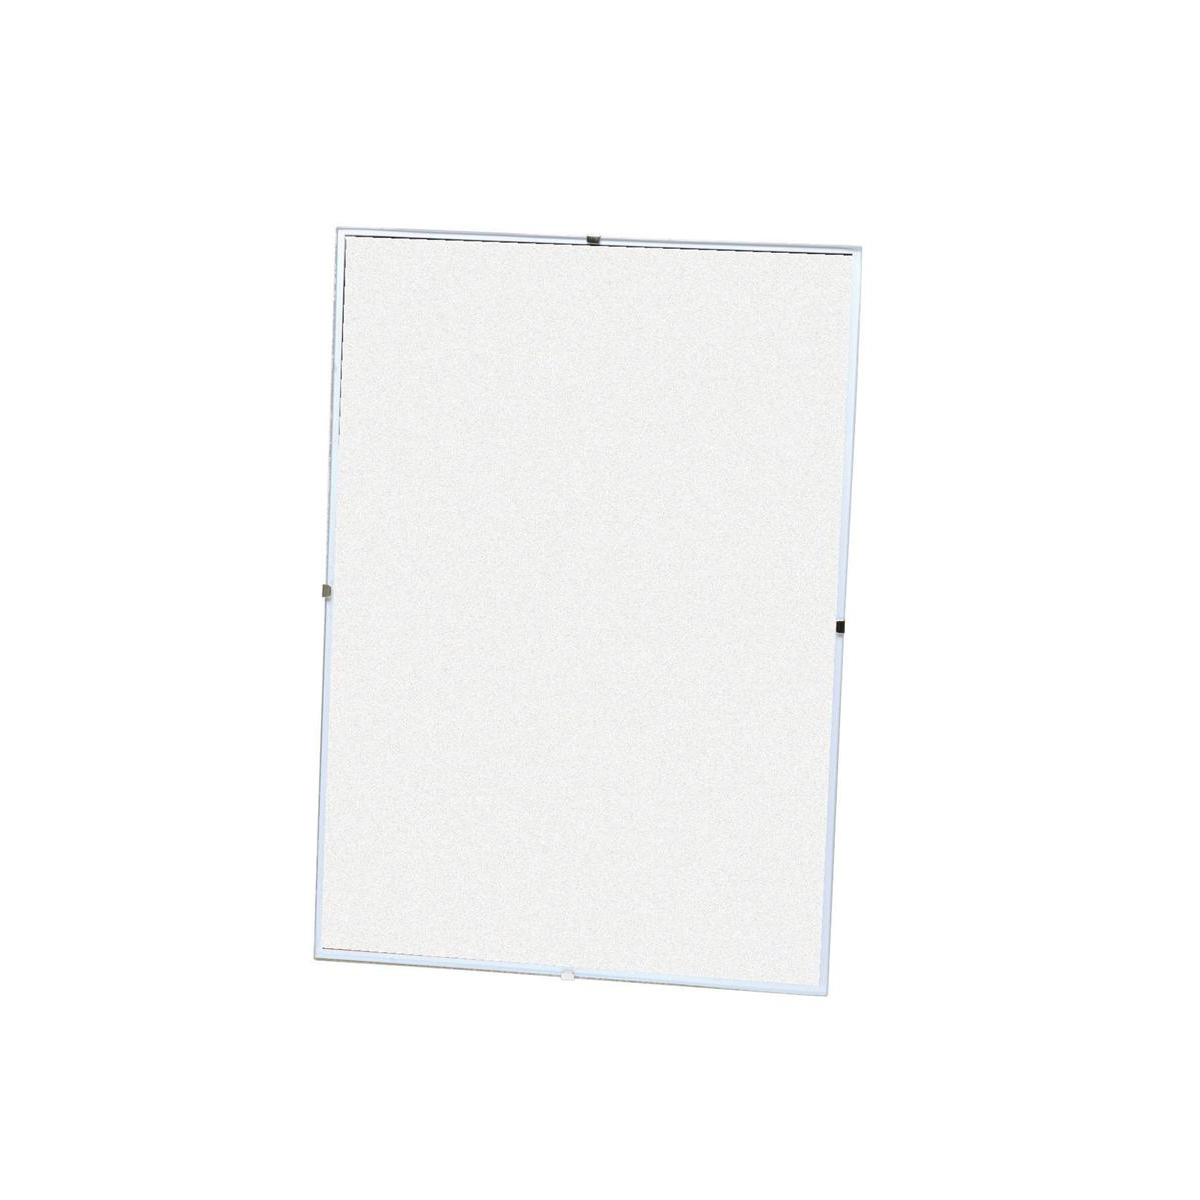 Certificate / Photo Frames 5 Star Office Clip Frame Plastic Front for Wall-mounting Back-loading A2 594x420mm Clear